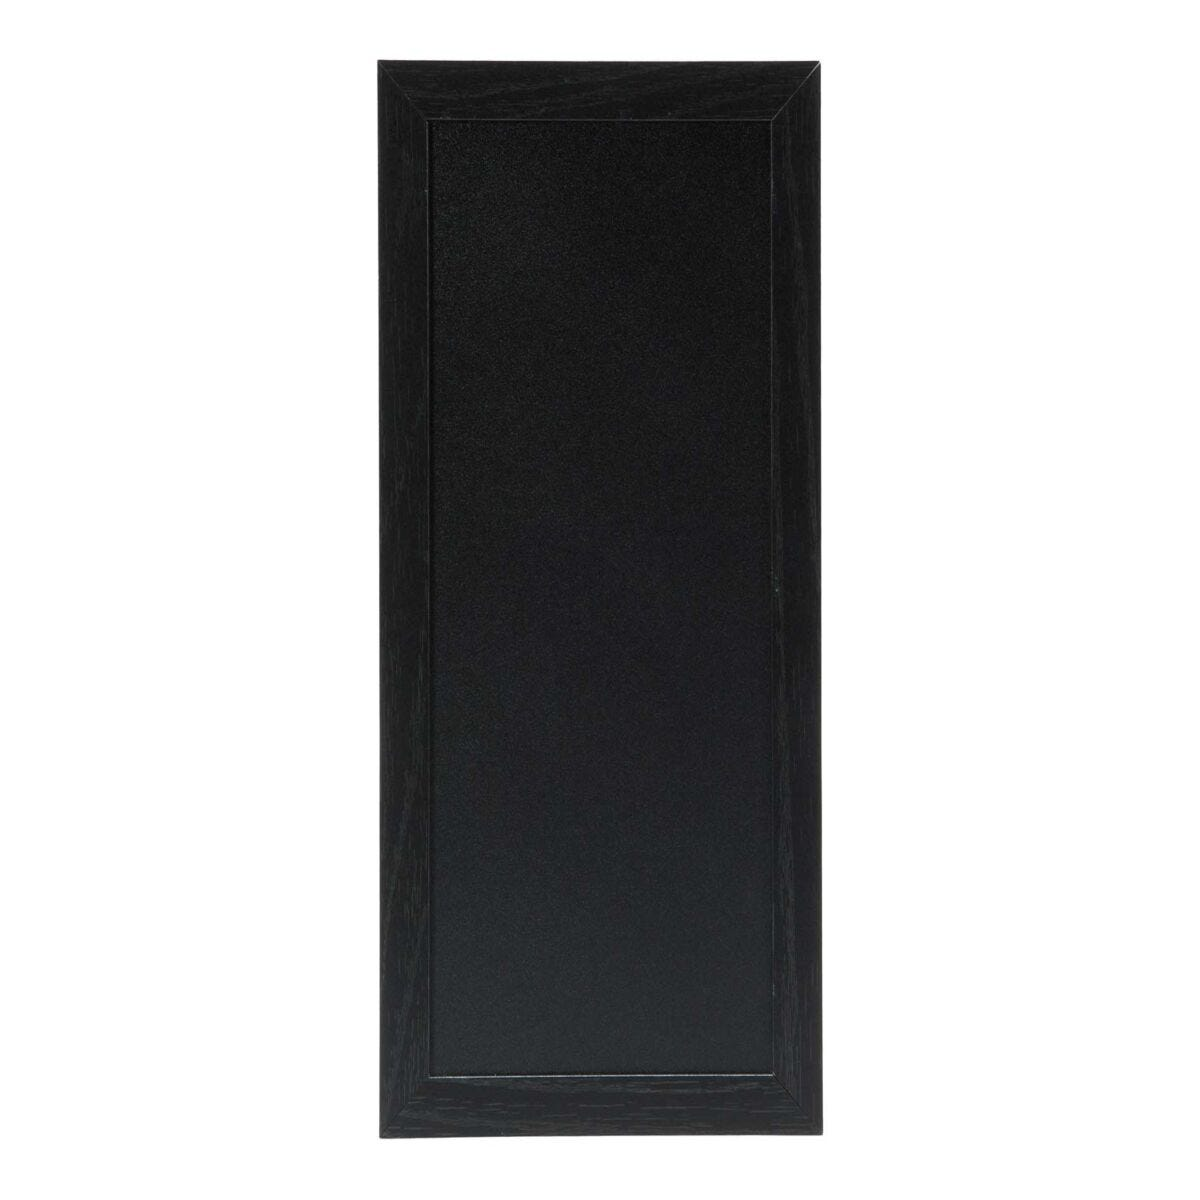 Securit Chalk Board with Black Frame - 20 x 40cm